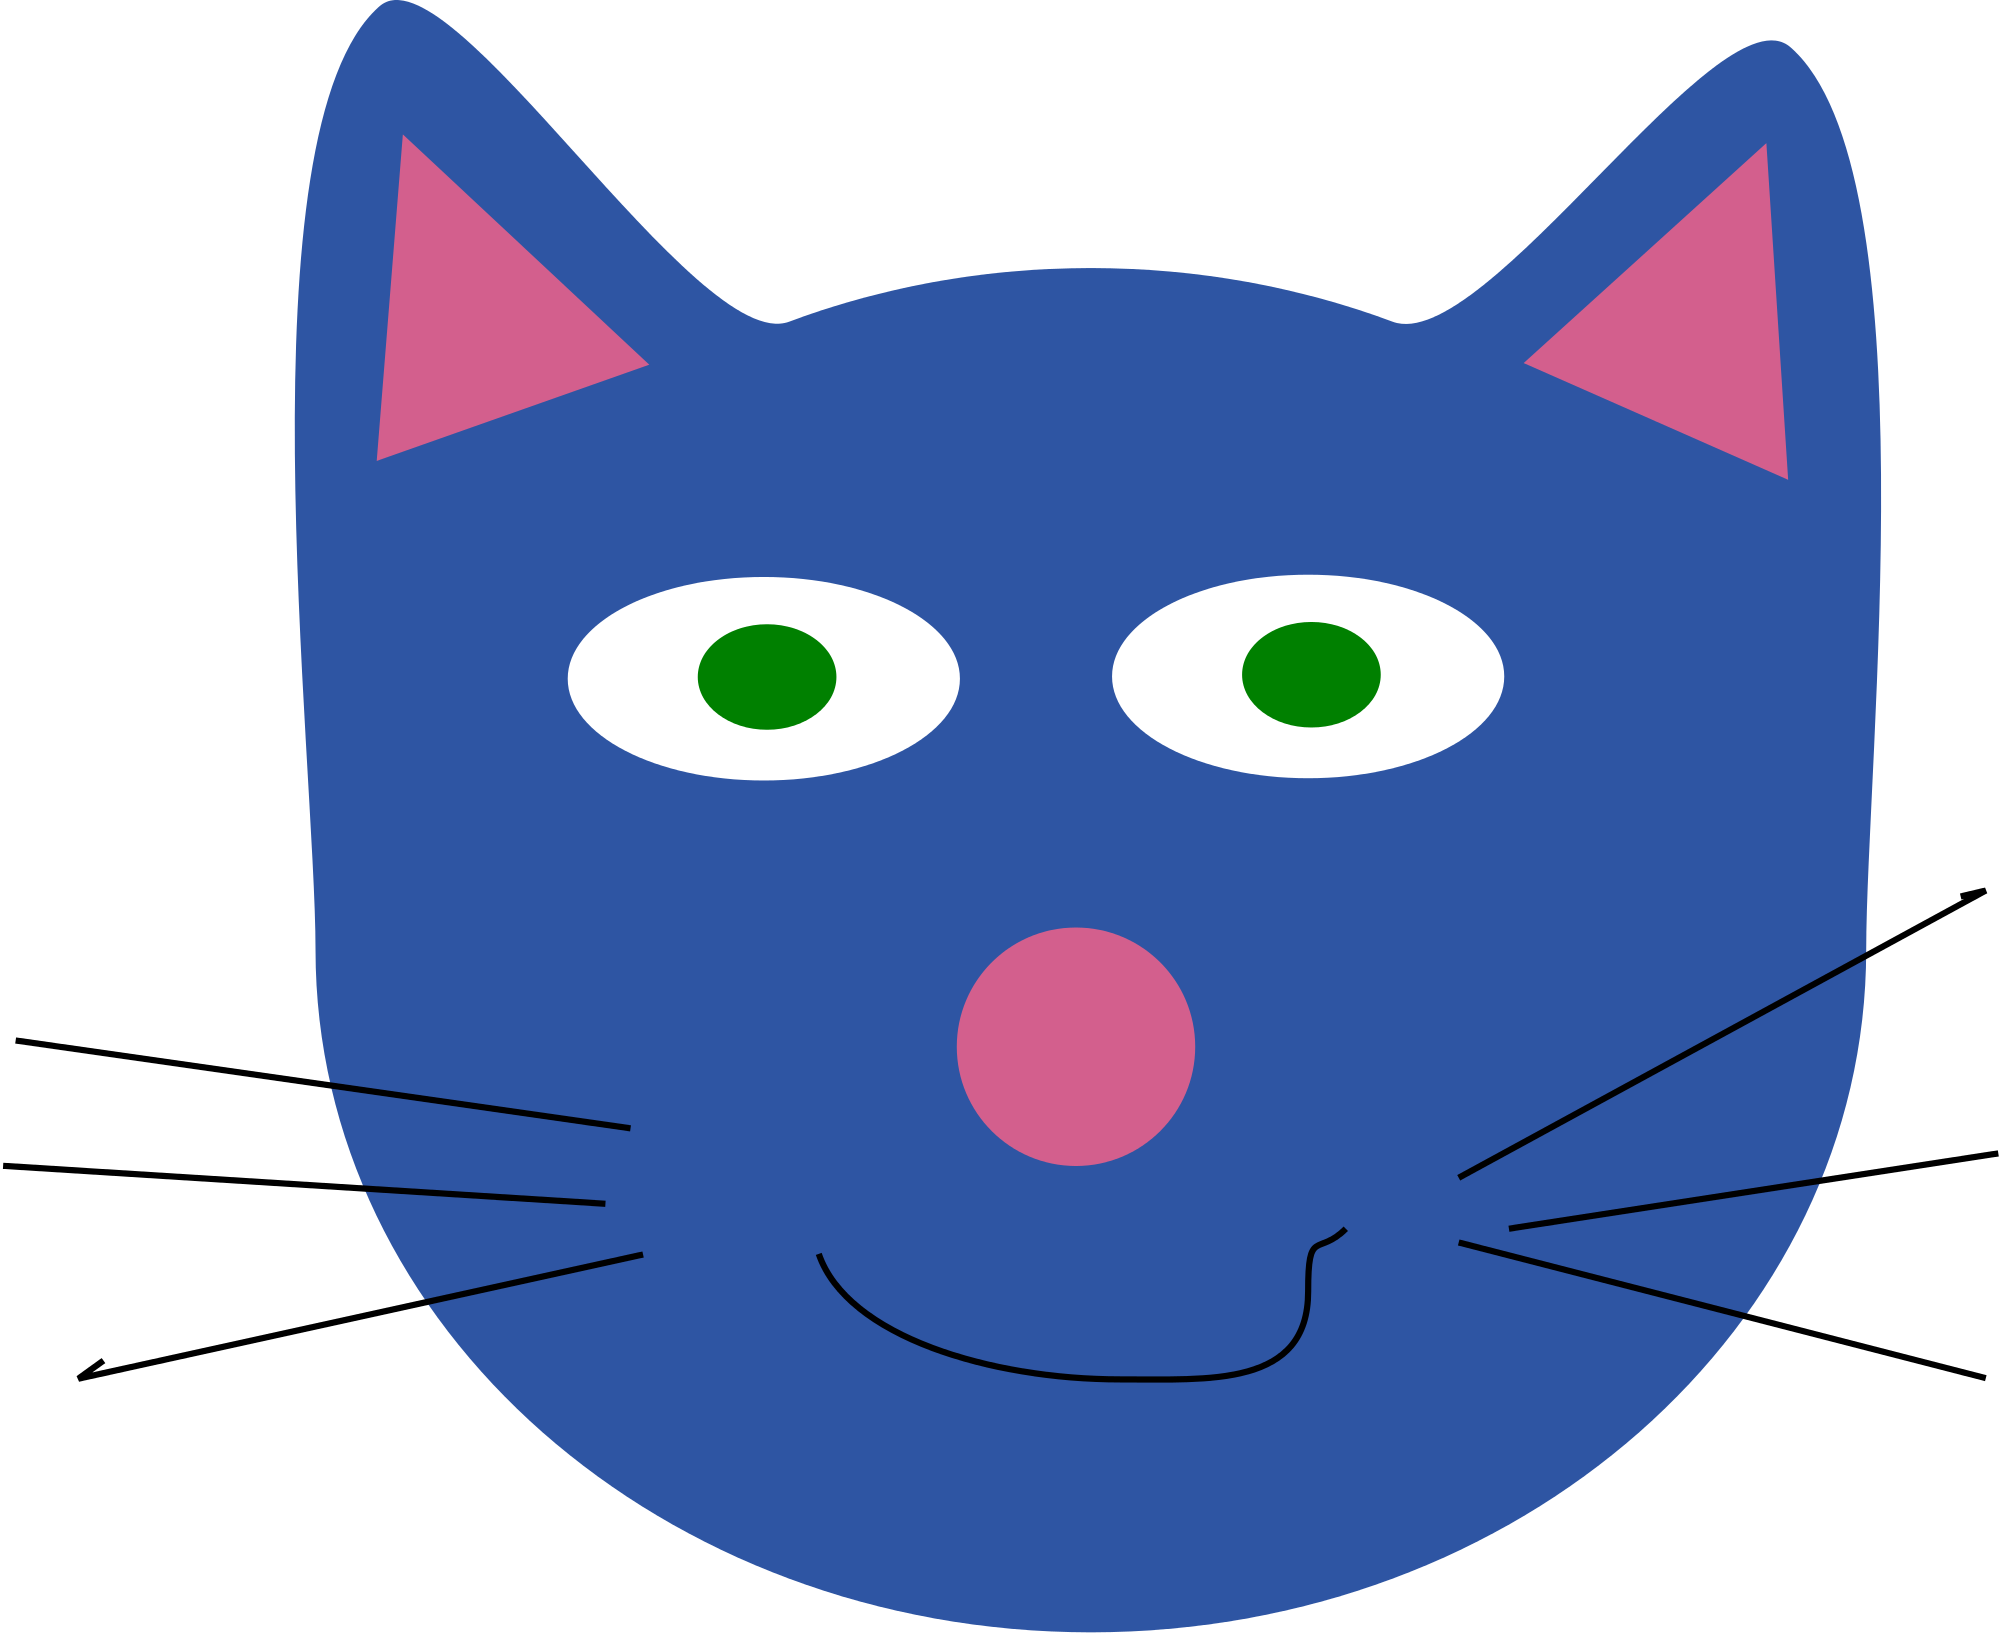 Blue cat clipart picture black and white download File:Cat drawing.svg - Wikimedia Commons picture black and white download